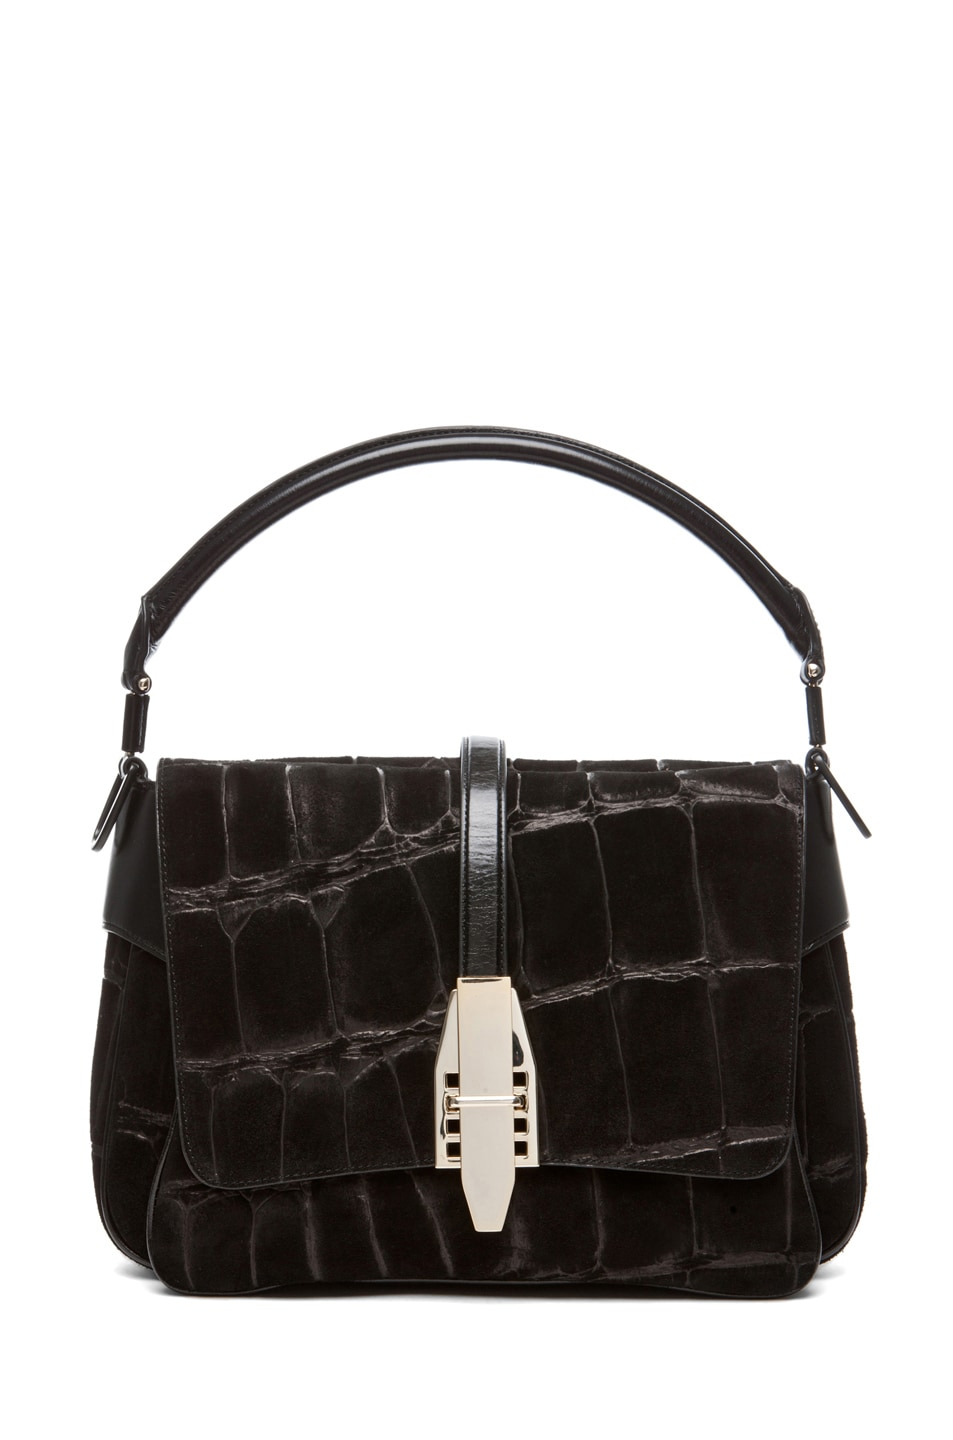 Image 1 of Theyskens' Theory Willa Abuk Embossed Croc Leather Bag in Black